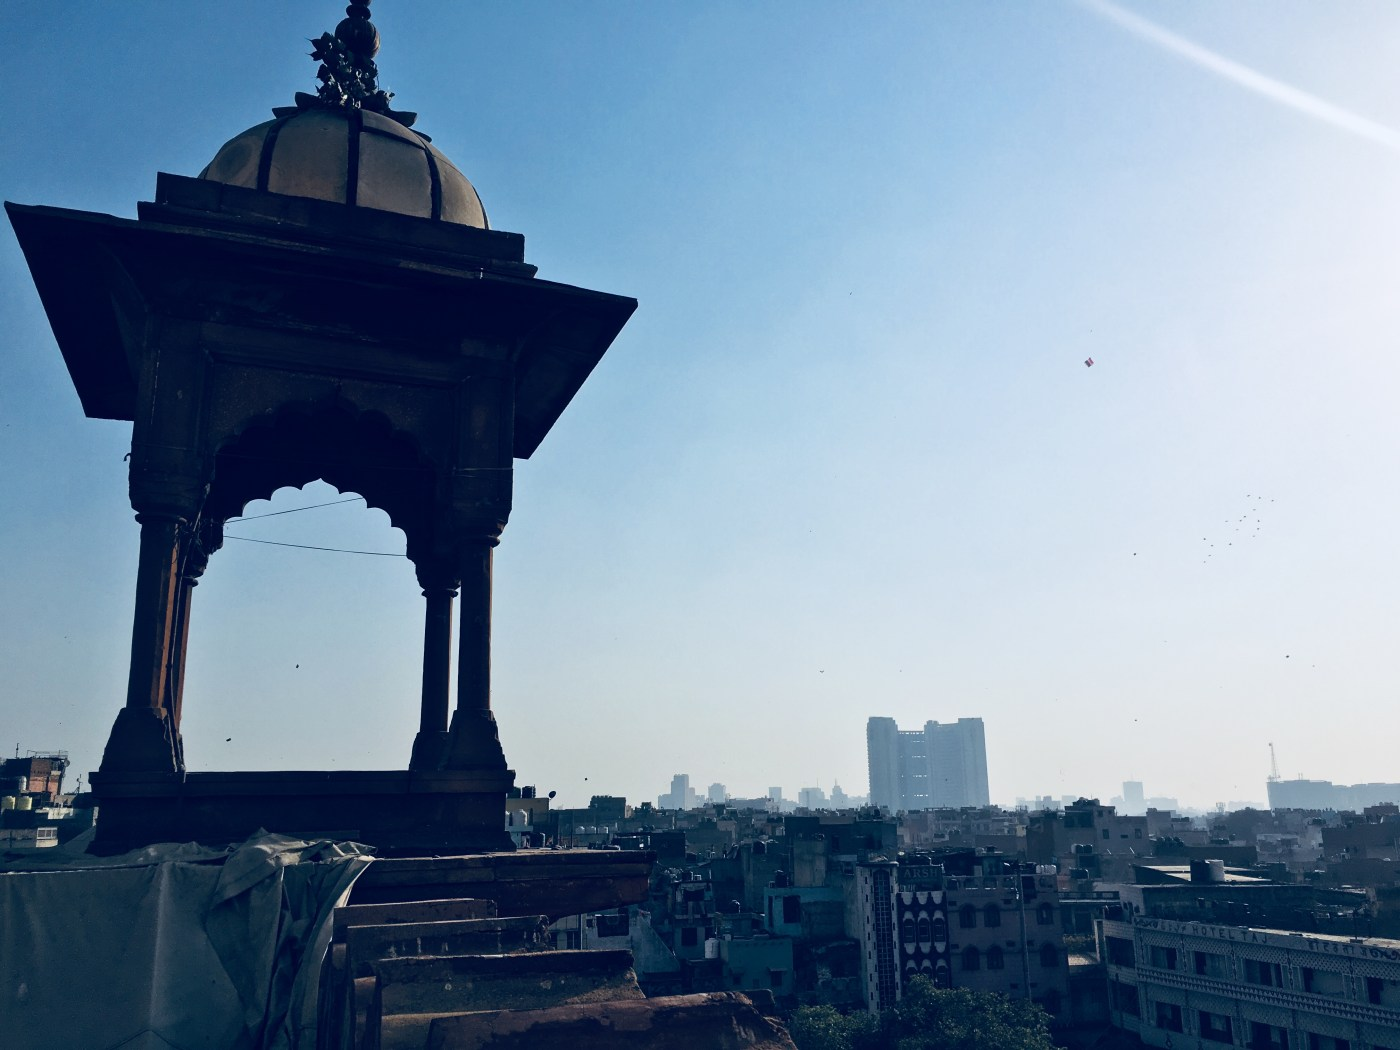 Views of Delhi from base of the Minaret of Jama Masjid   The largest mosque in India